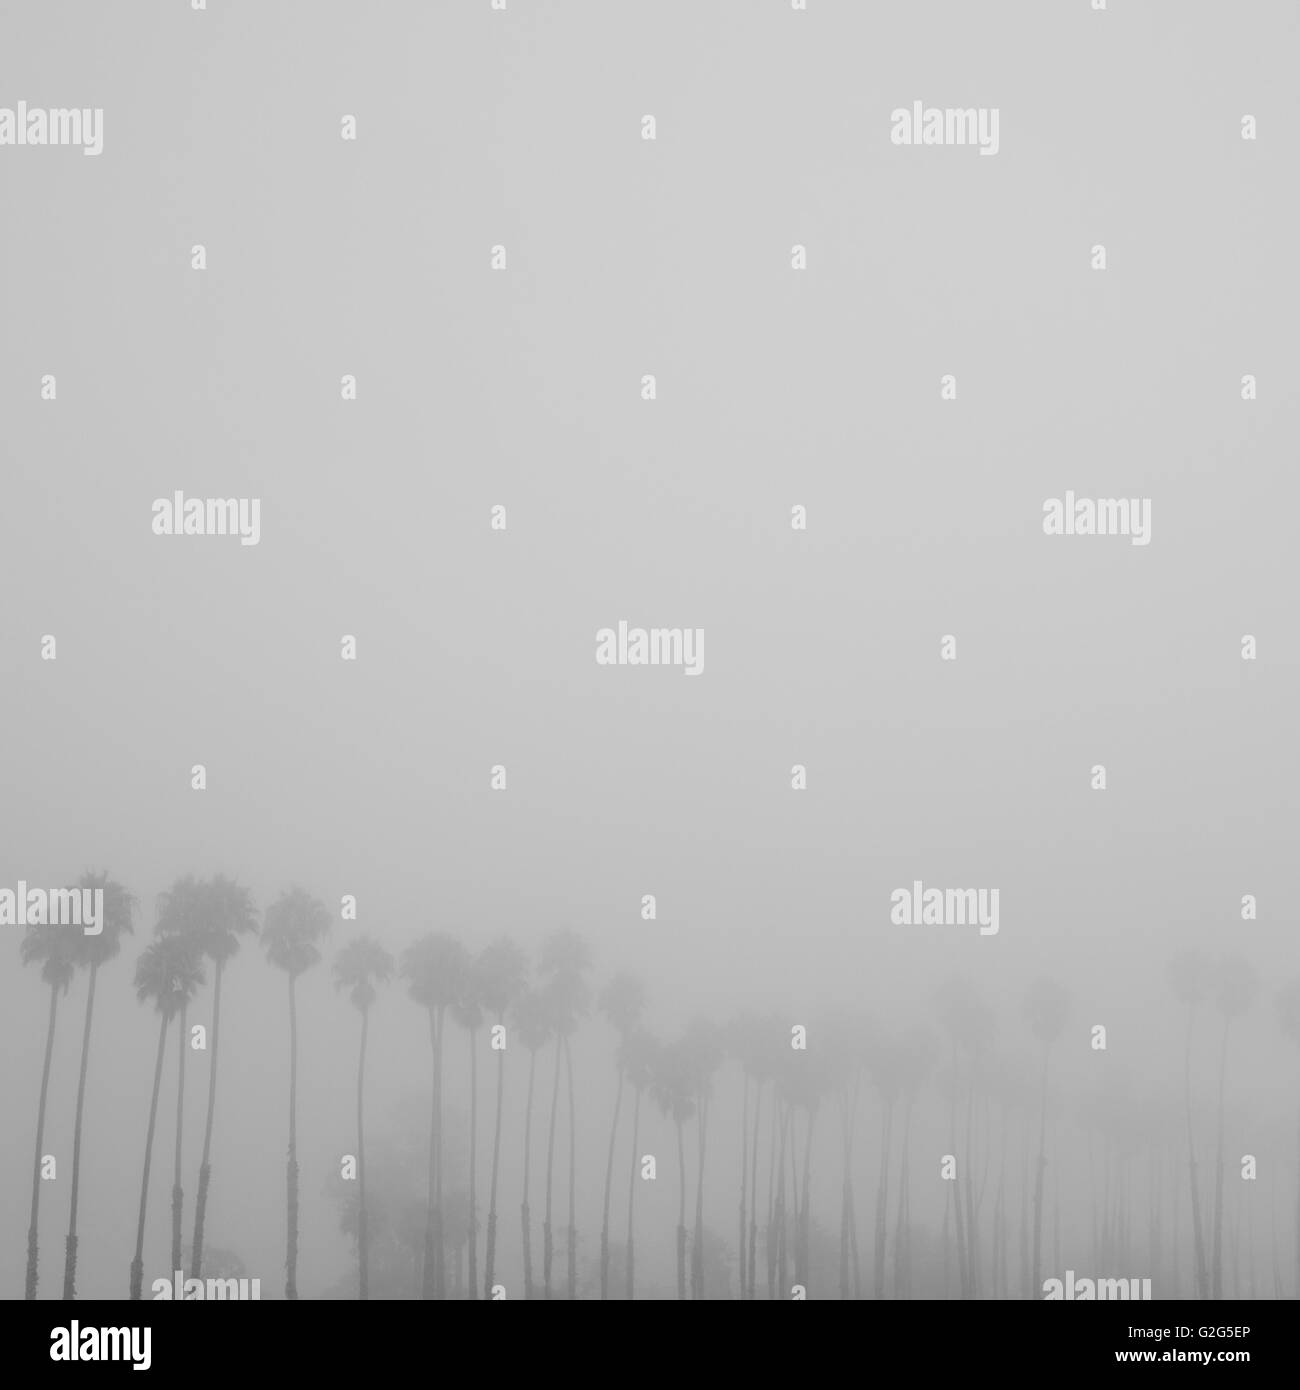 Row of Palm Trees in Fog - Stock Image